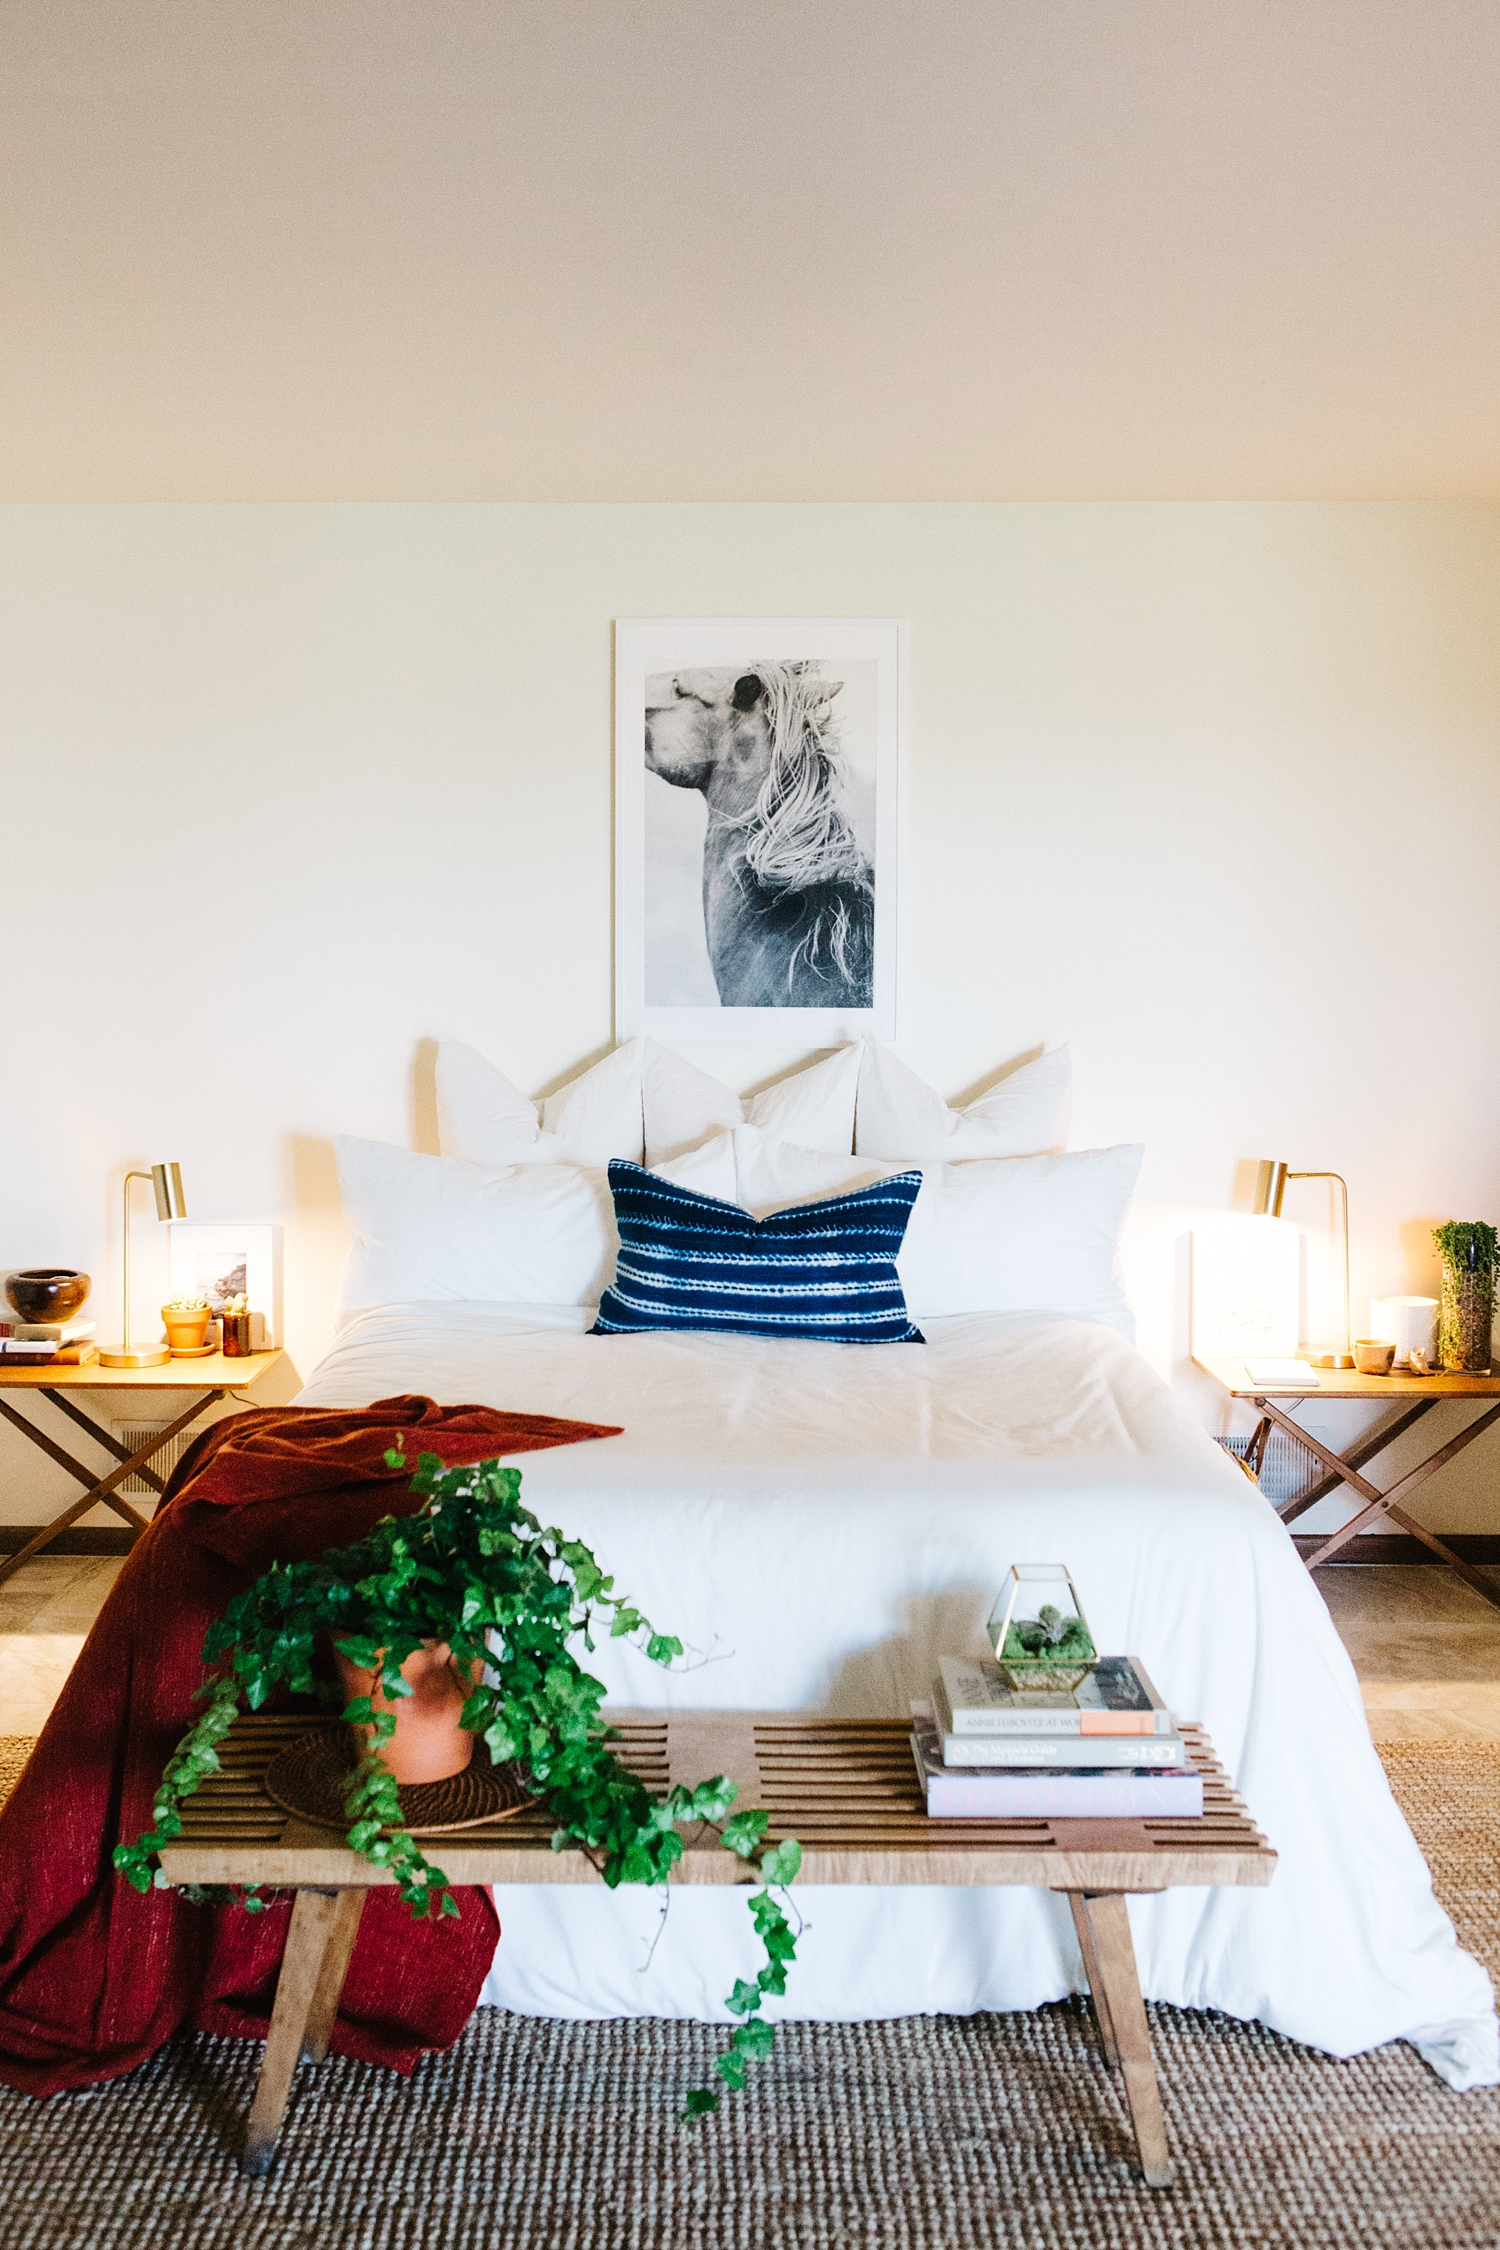 It's all about symmetry . The fine art giclee equine print anchors the mid-century bedside tables, bed, and bench together in order to draw the eye in. Forgoing a headboard keeps the space looking Scandinavian while the abundance of pillows provide a comfy Bohemian nest vibe.